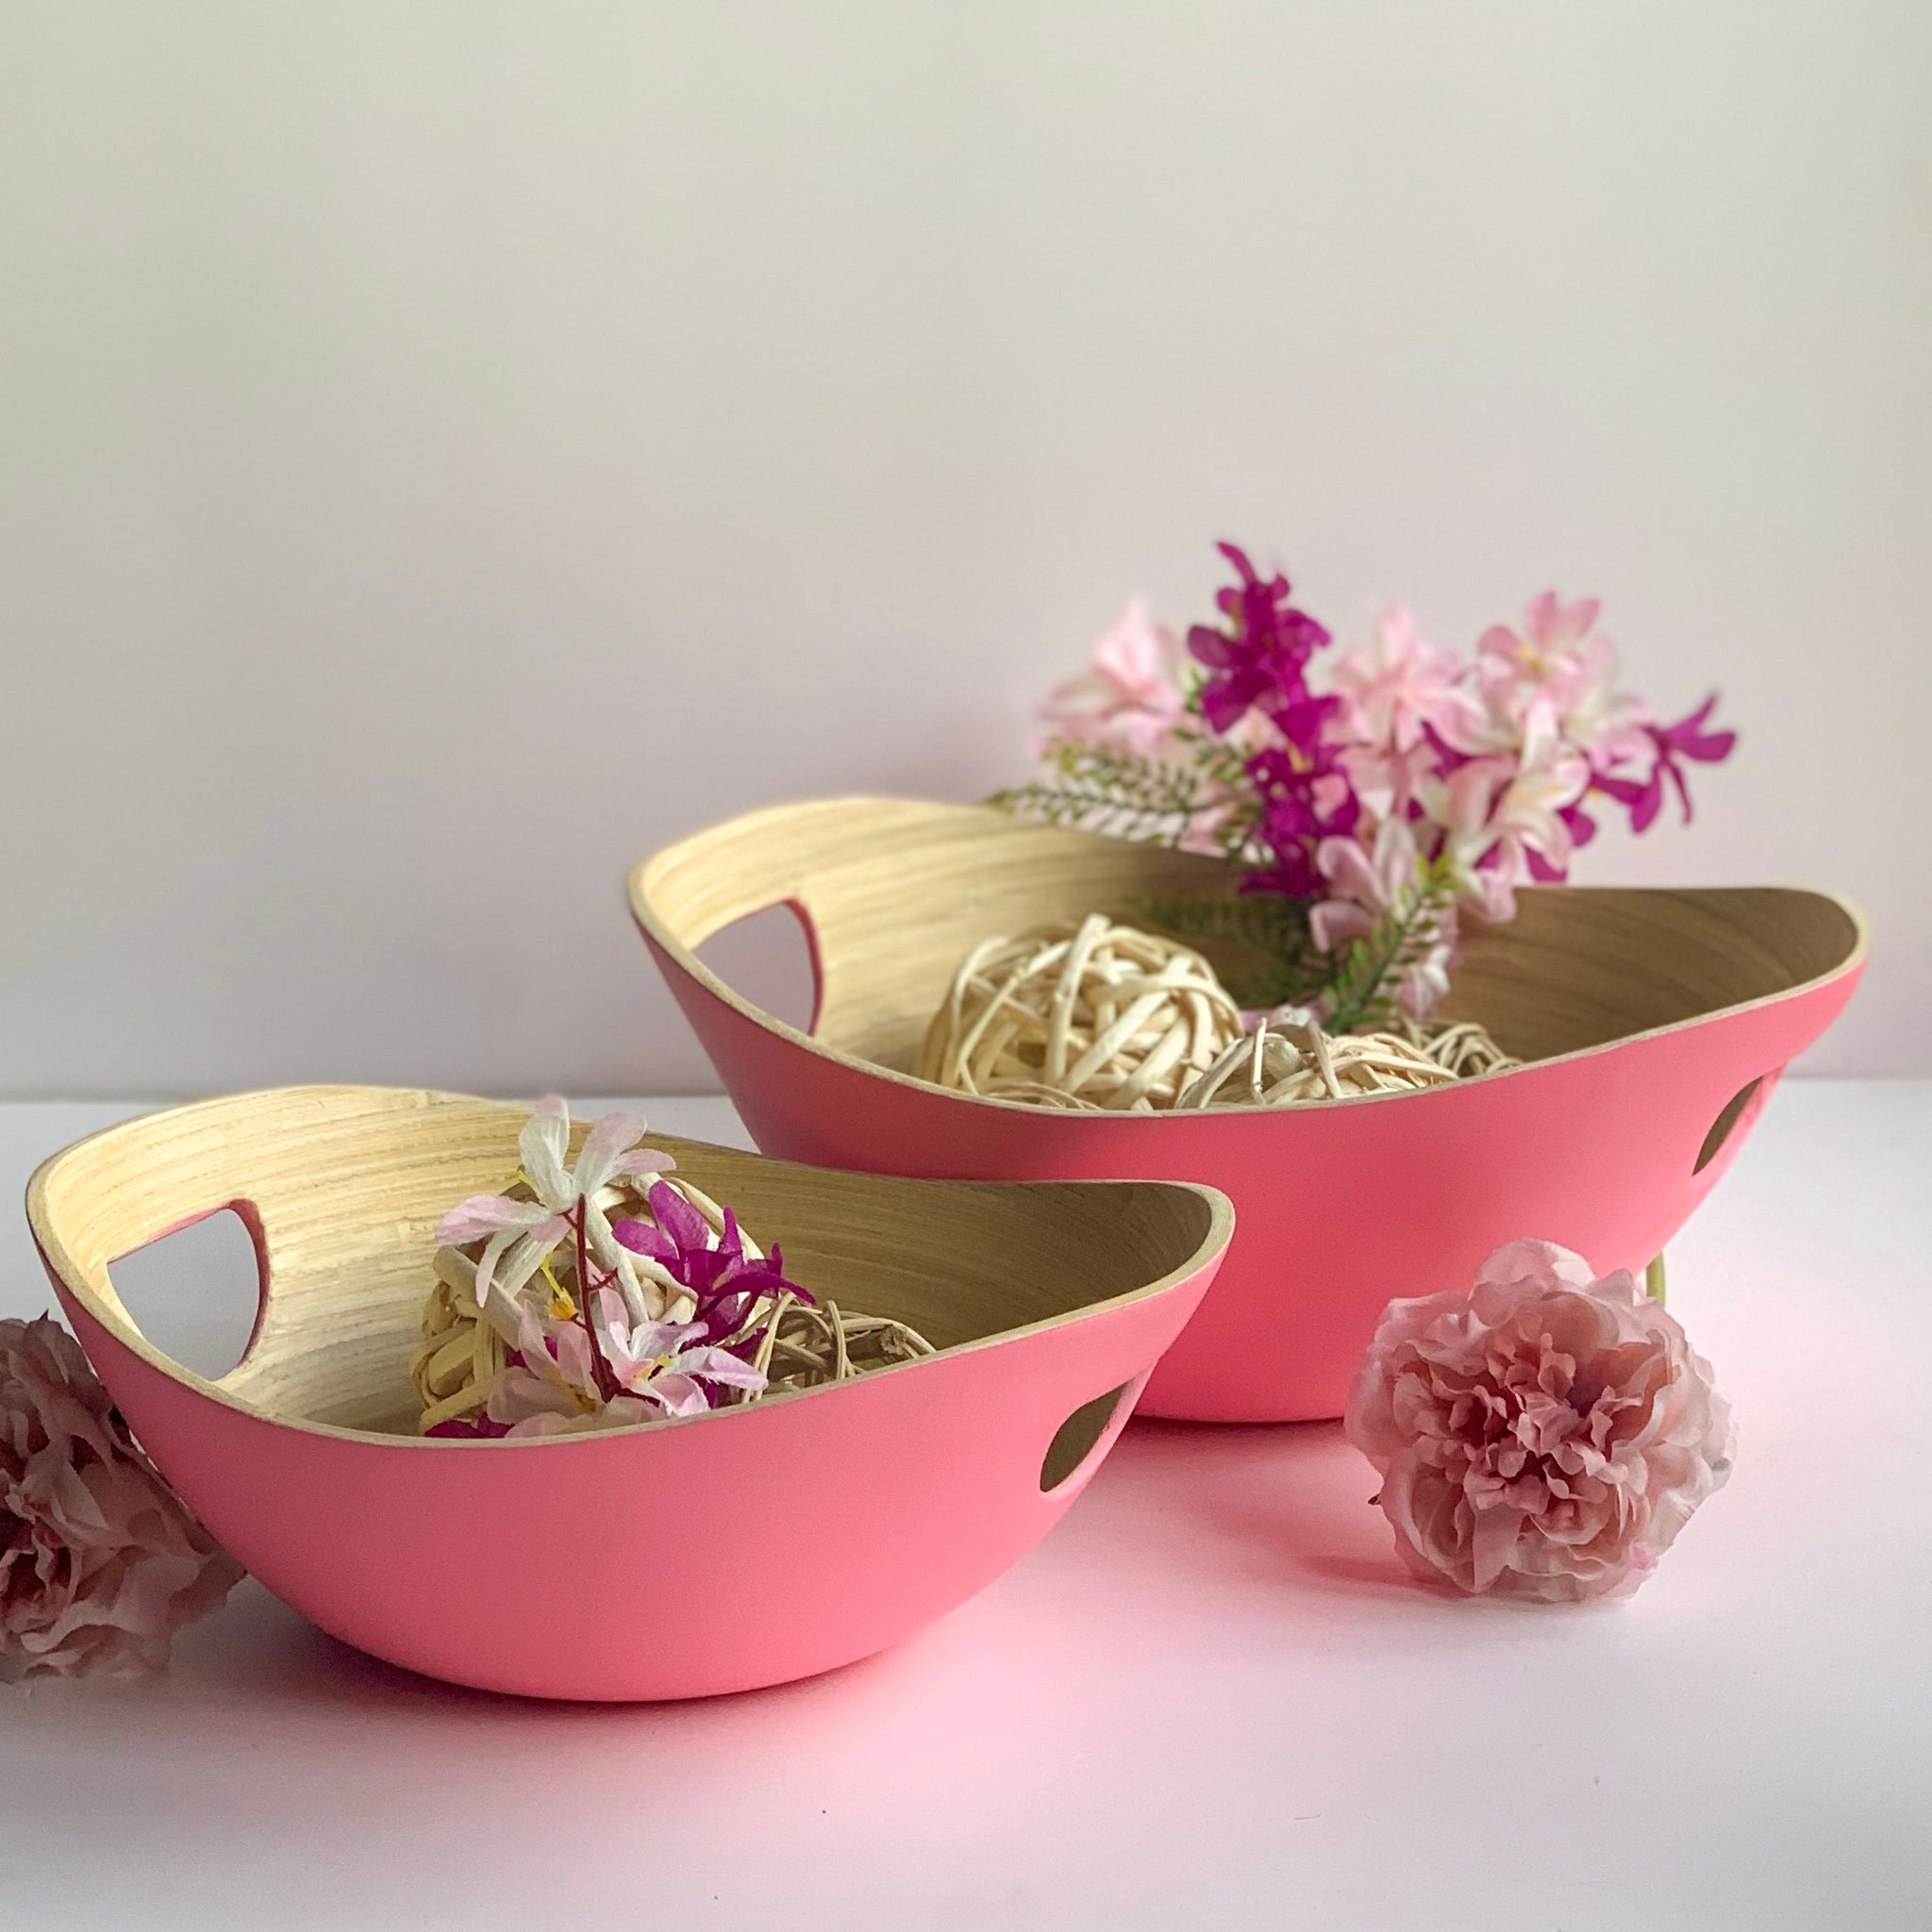 PASTEL Bamboo Bowl with Handle - Set of 2 - Pink - Matte - Nestasia Home Decor